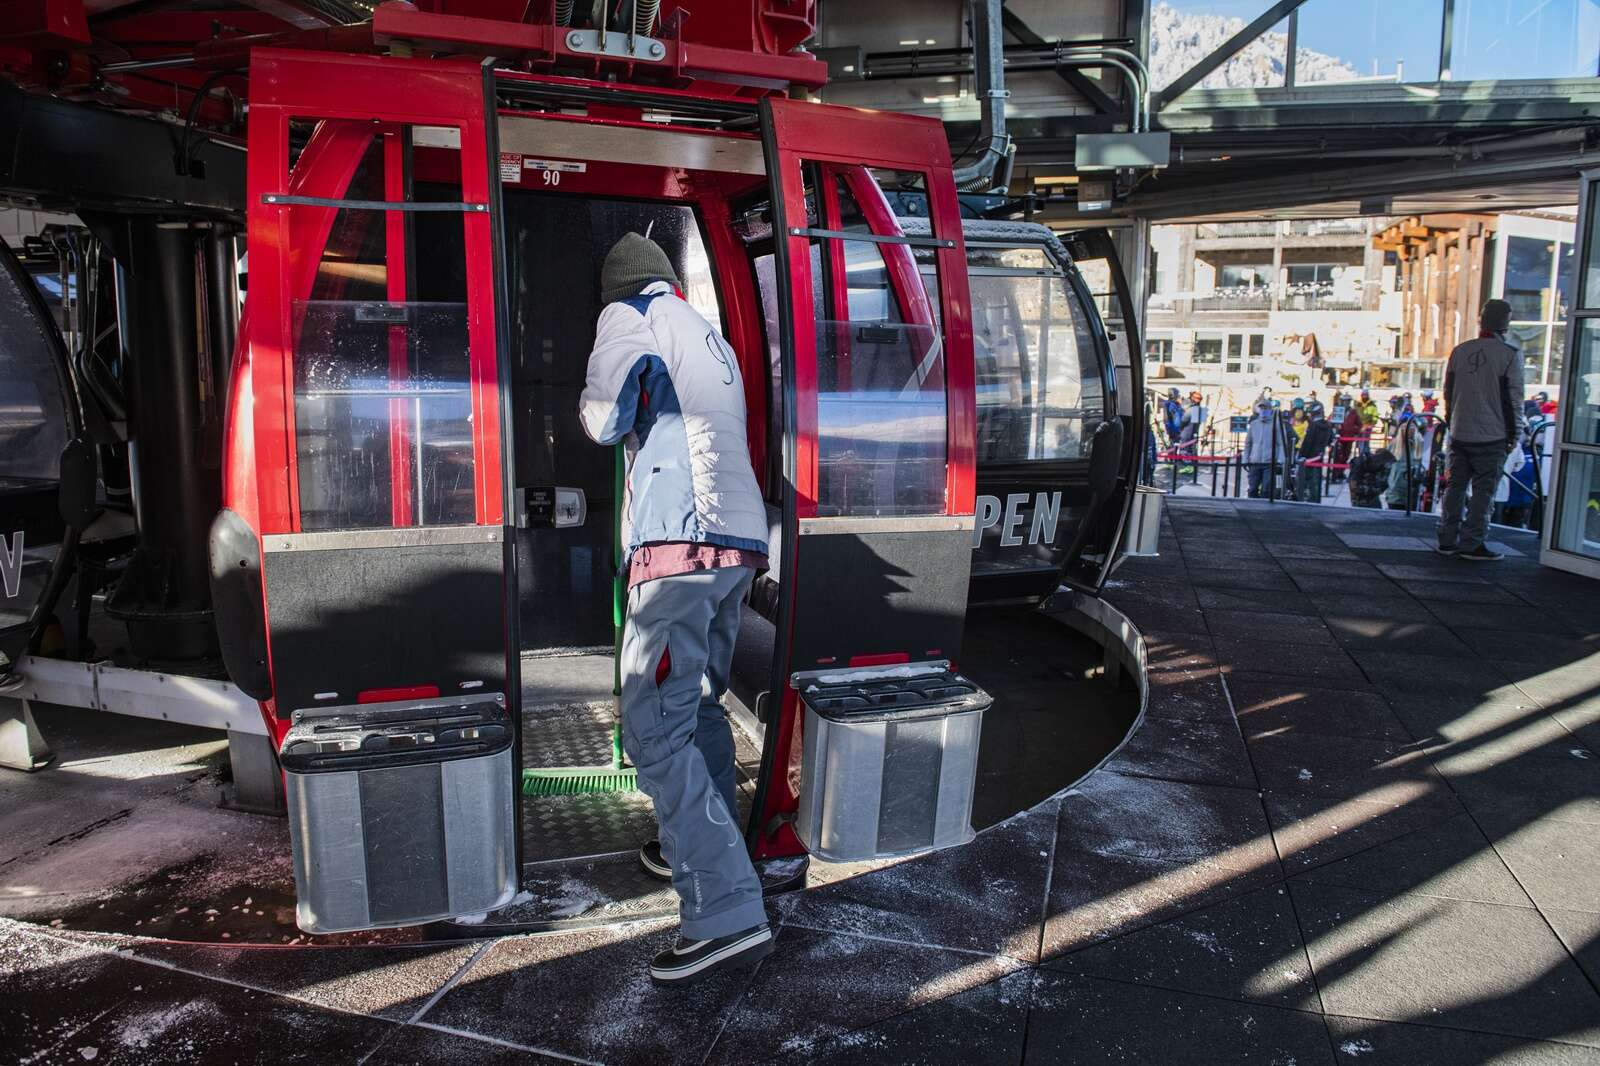 An Aspen Skiing Company employee sweeps snow out of one of the cars on the Silver Queen Gondola as people line up for opening day on Aspen Mountain on Wednesday, Nov. 25, 2020. (Kelsey Brunner/The Aspen Times)